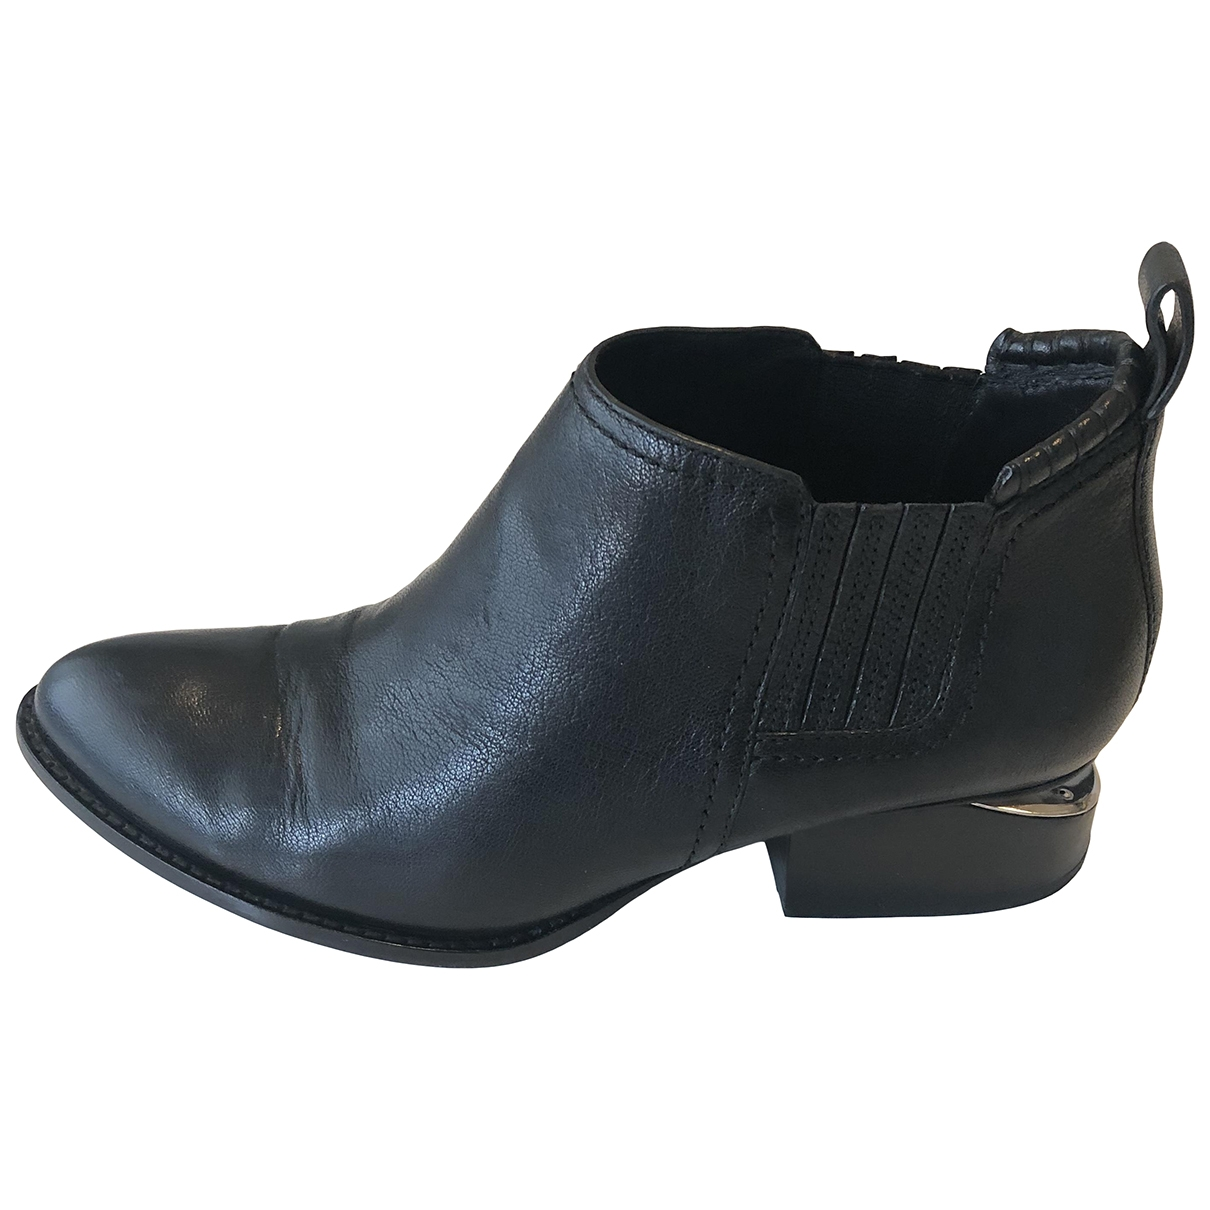 Alexander Wang Kori Black Leather Ankle boots for Women 38 EU